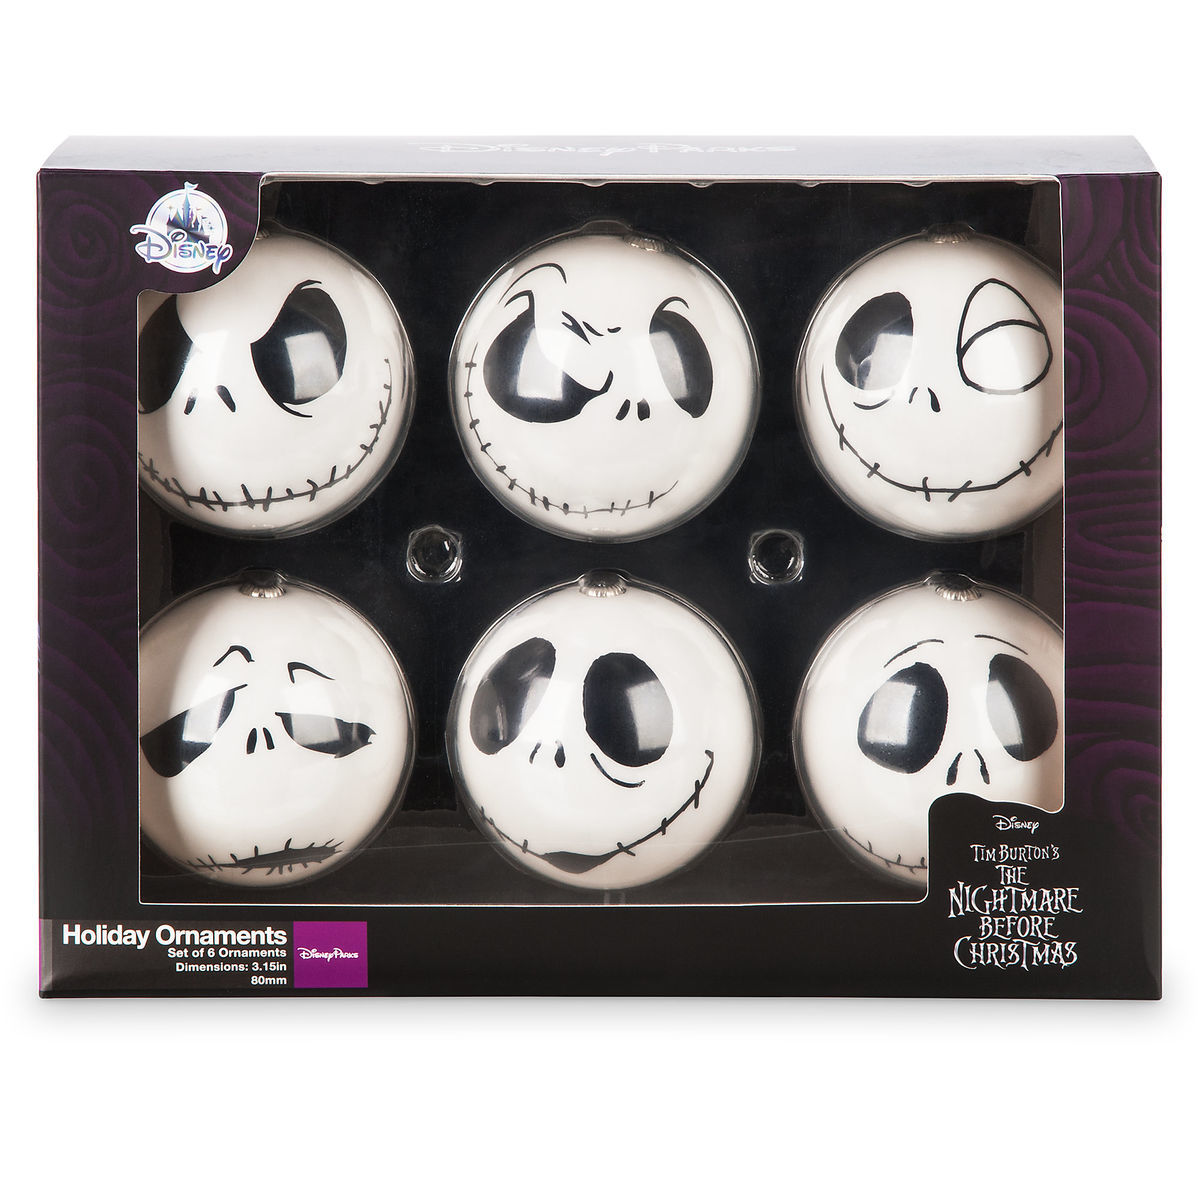 d4eff08c483e0 Disney Holiday Ornament Set - Jack Skellington - Set of 6